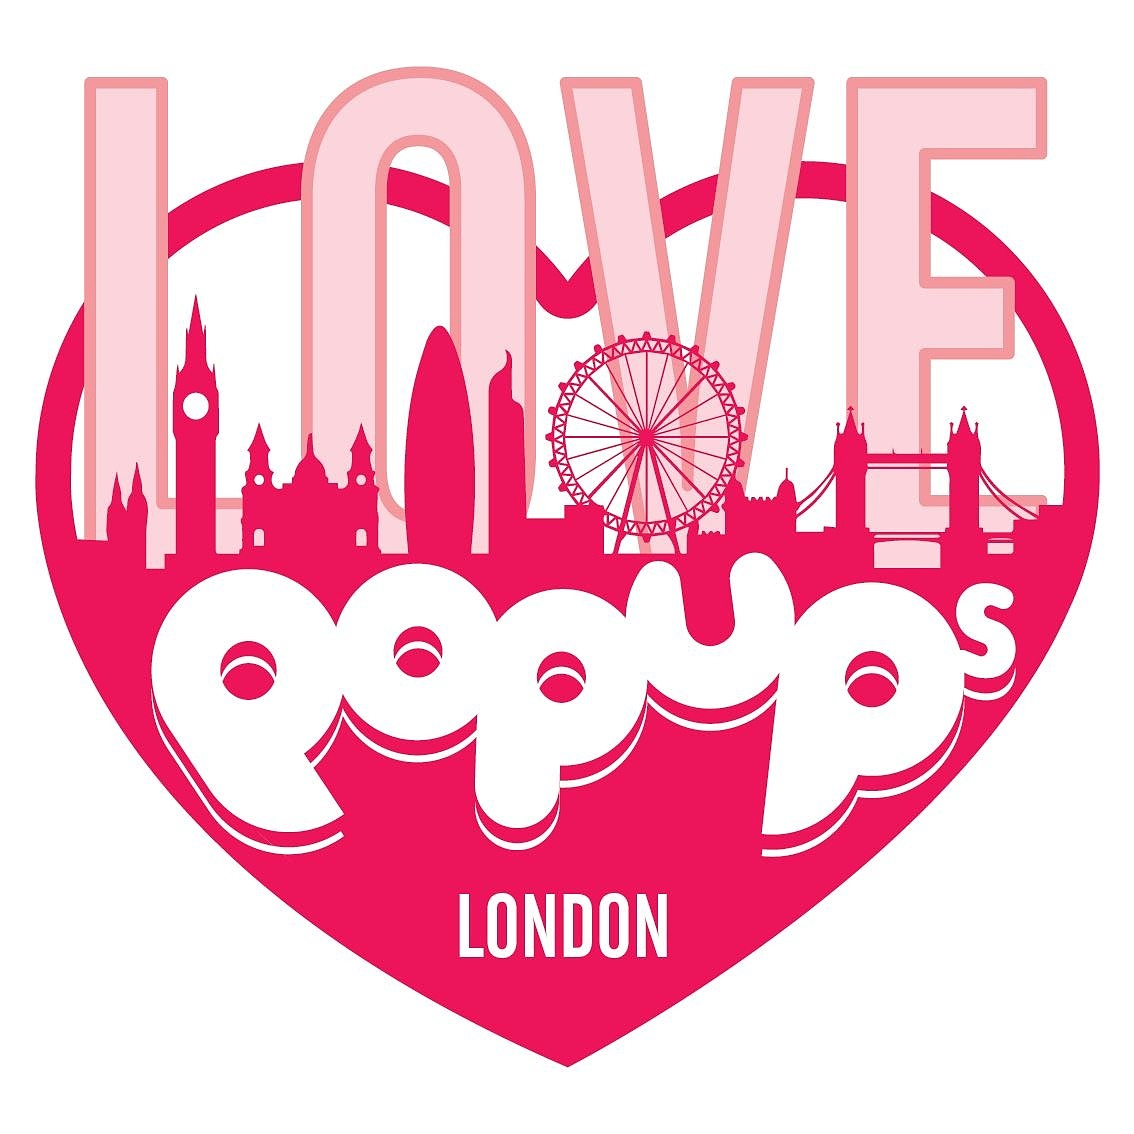 Formidable Joy | Formidable Joy Blog | Love Pop Ups - London | London Pop Ups | Guest Post | Lifestyle